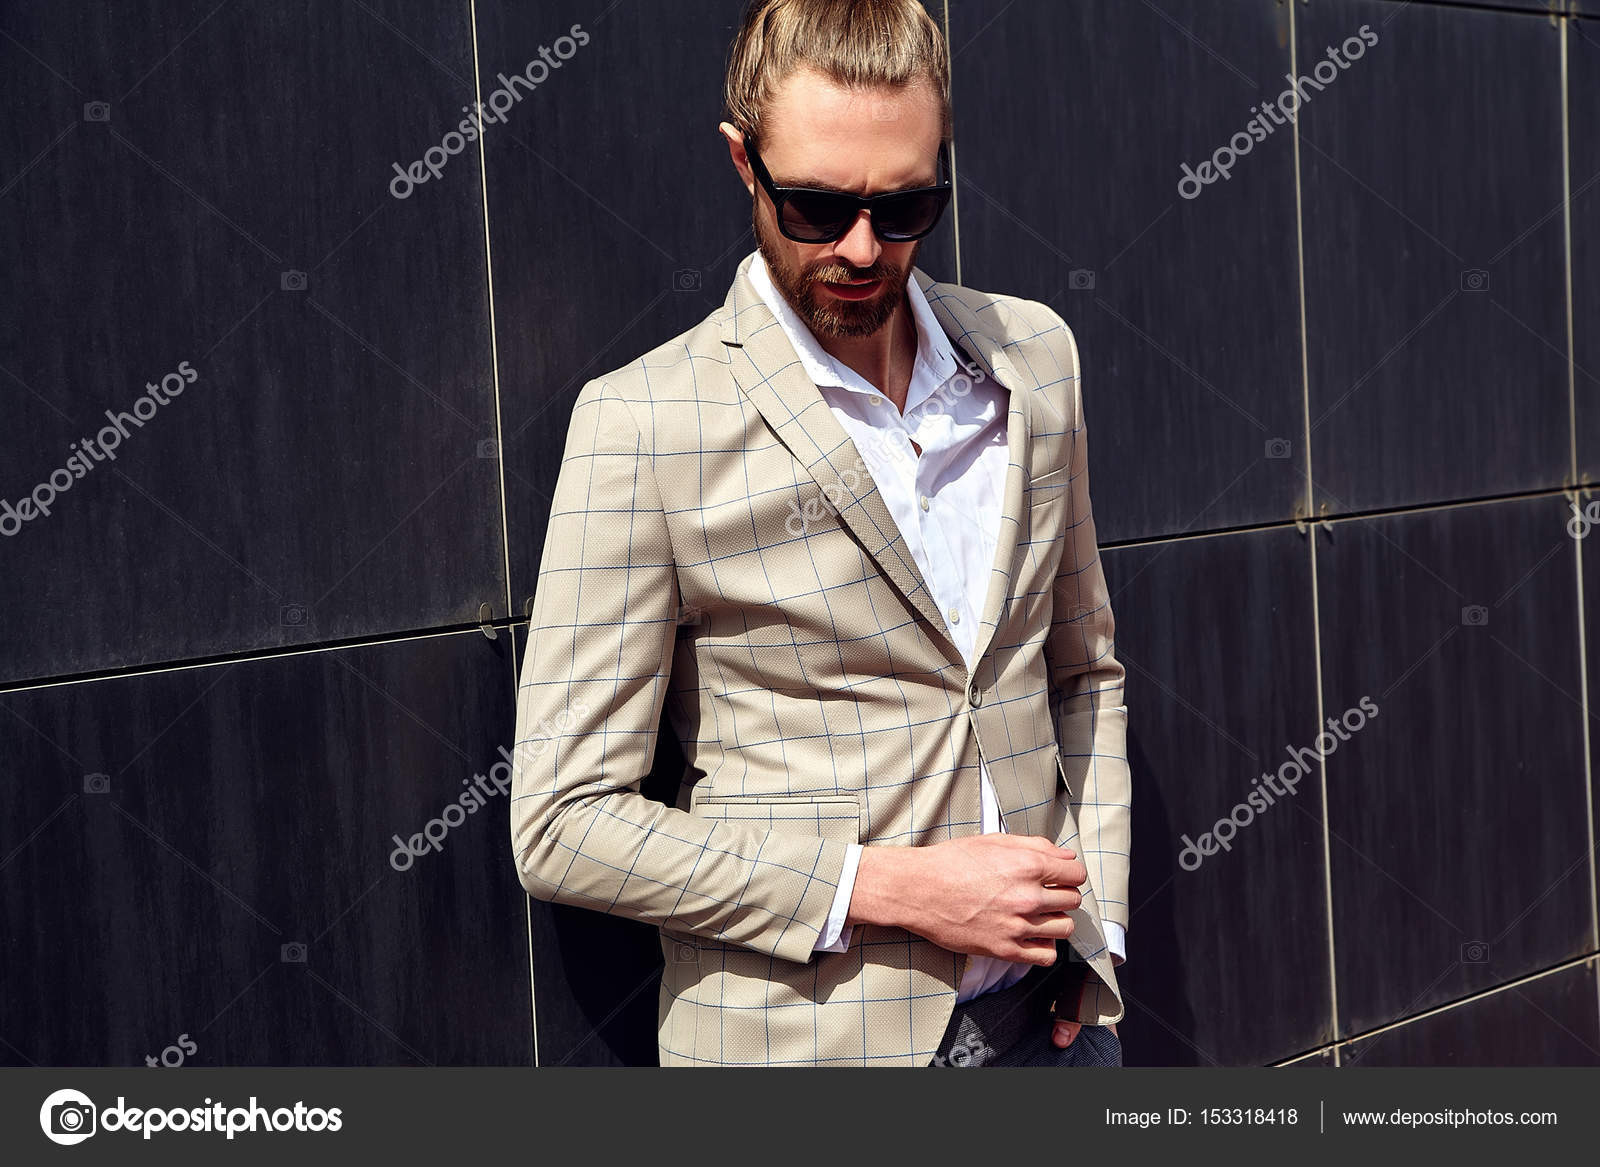 Portrait Of Sexy Handsome Fashion Male Model Man Dressed In Elegant Checkered Suit Posing Outdoors On